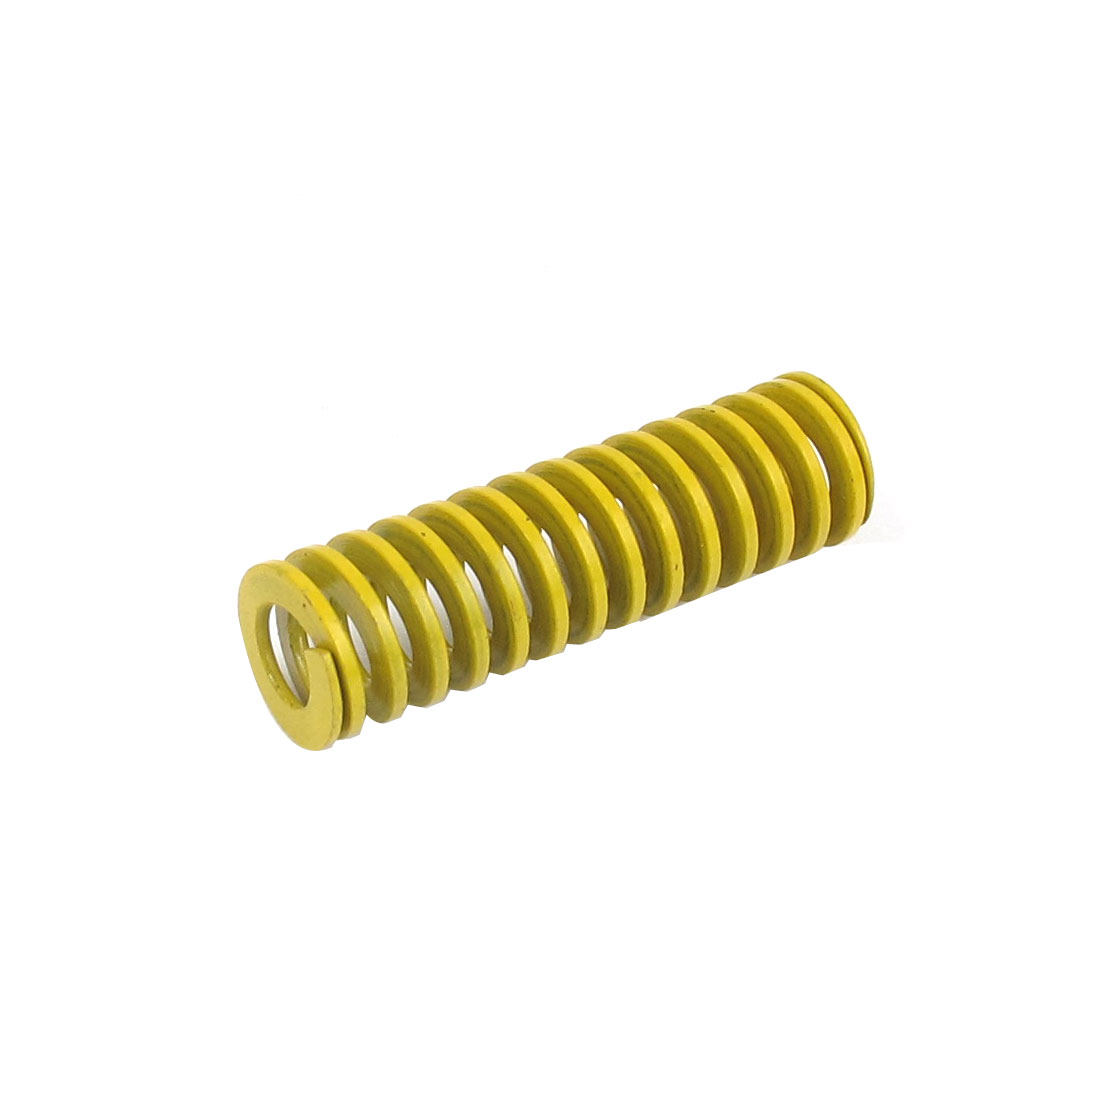 12mm OD 40mm Long Lightest Load Spiral Stamping Compression Die Spring Yellow